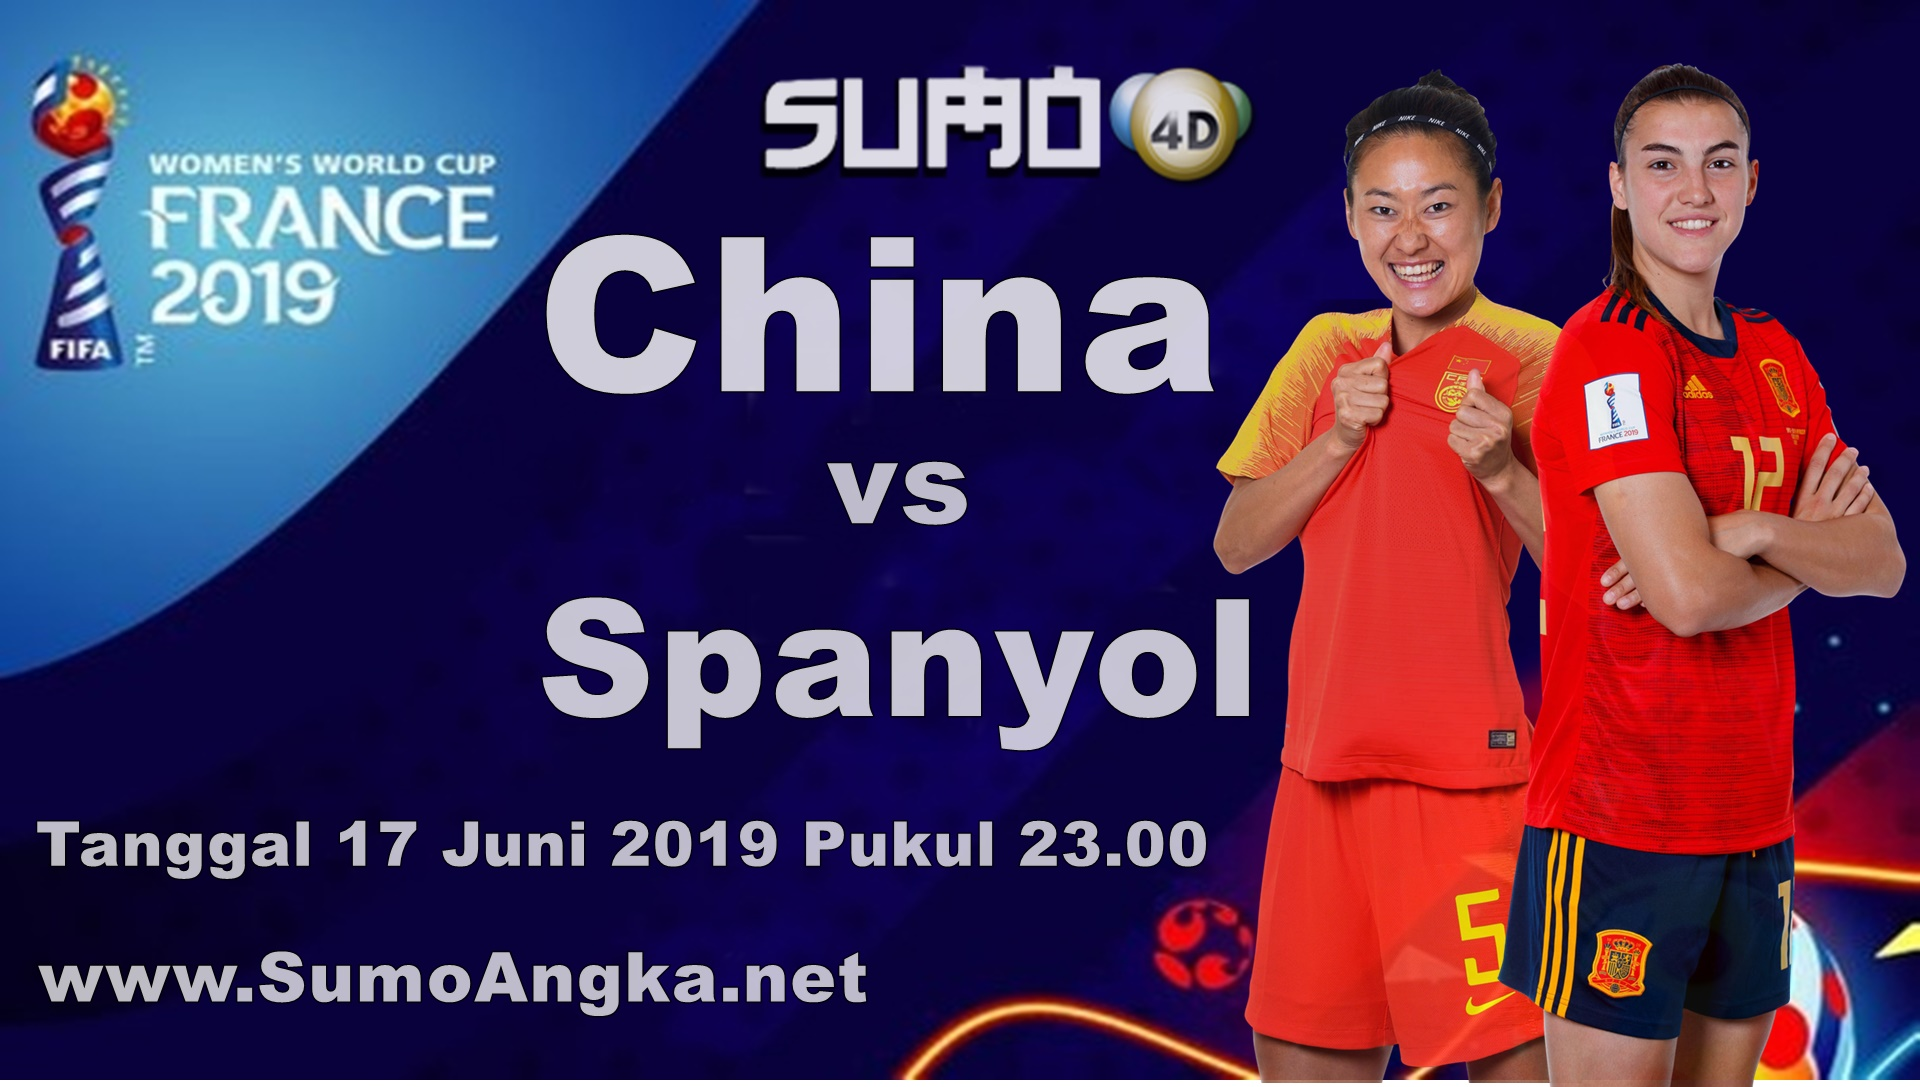 China vs Spanyol 17 Juni 2019 Women World Cup